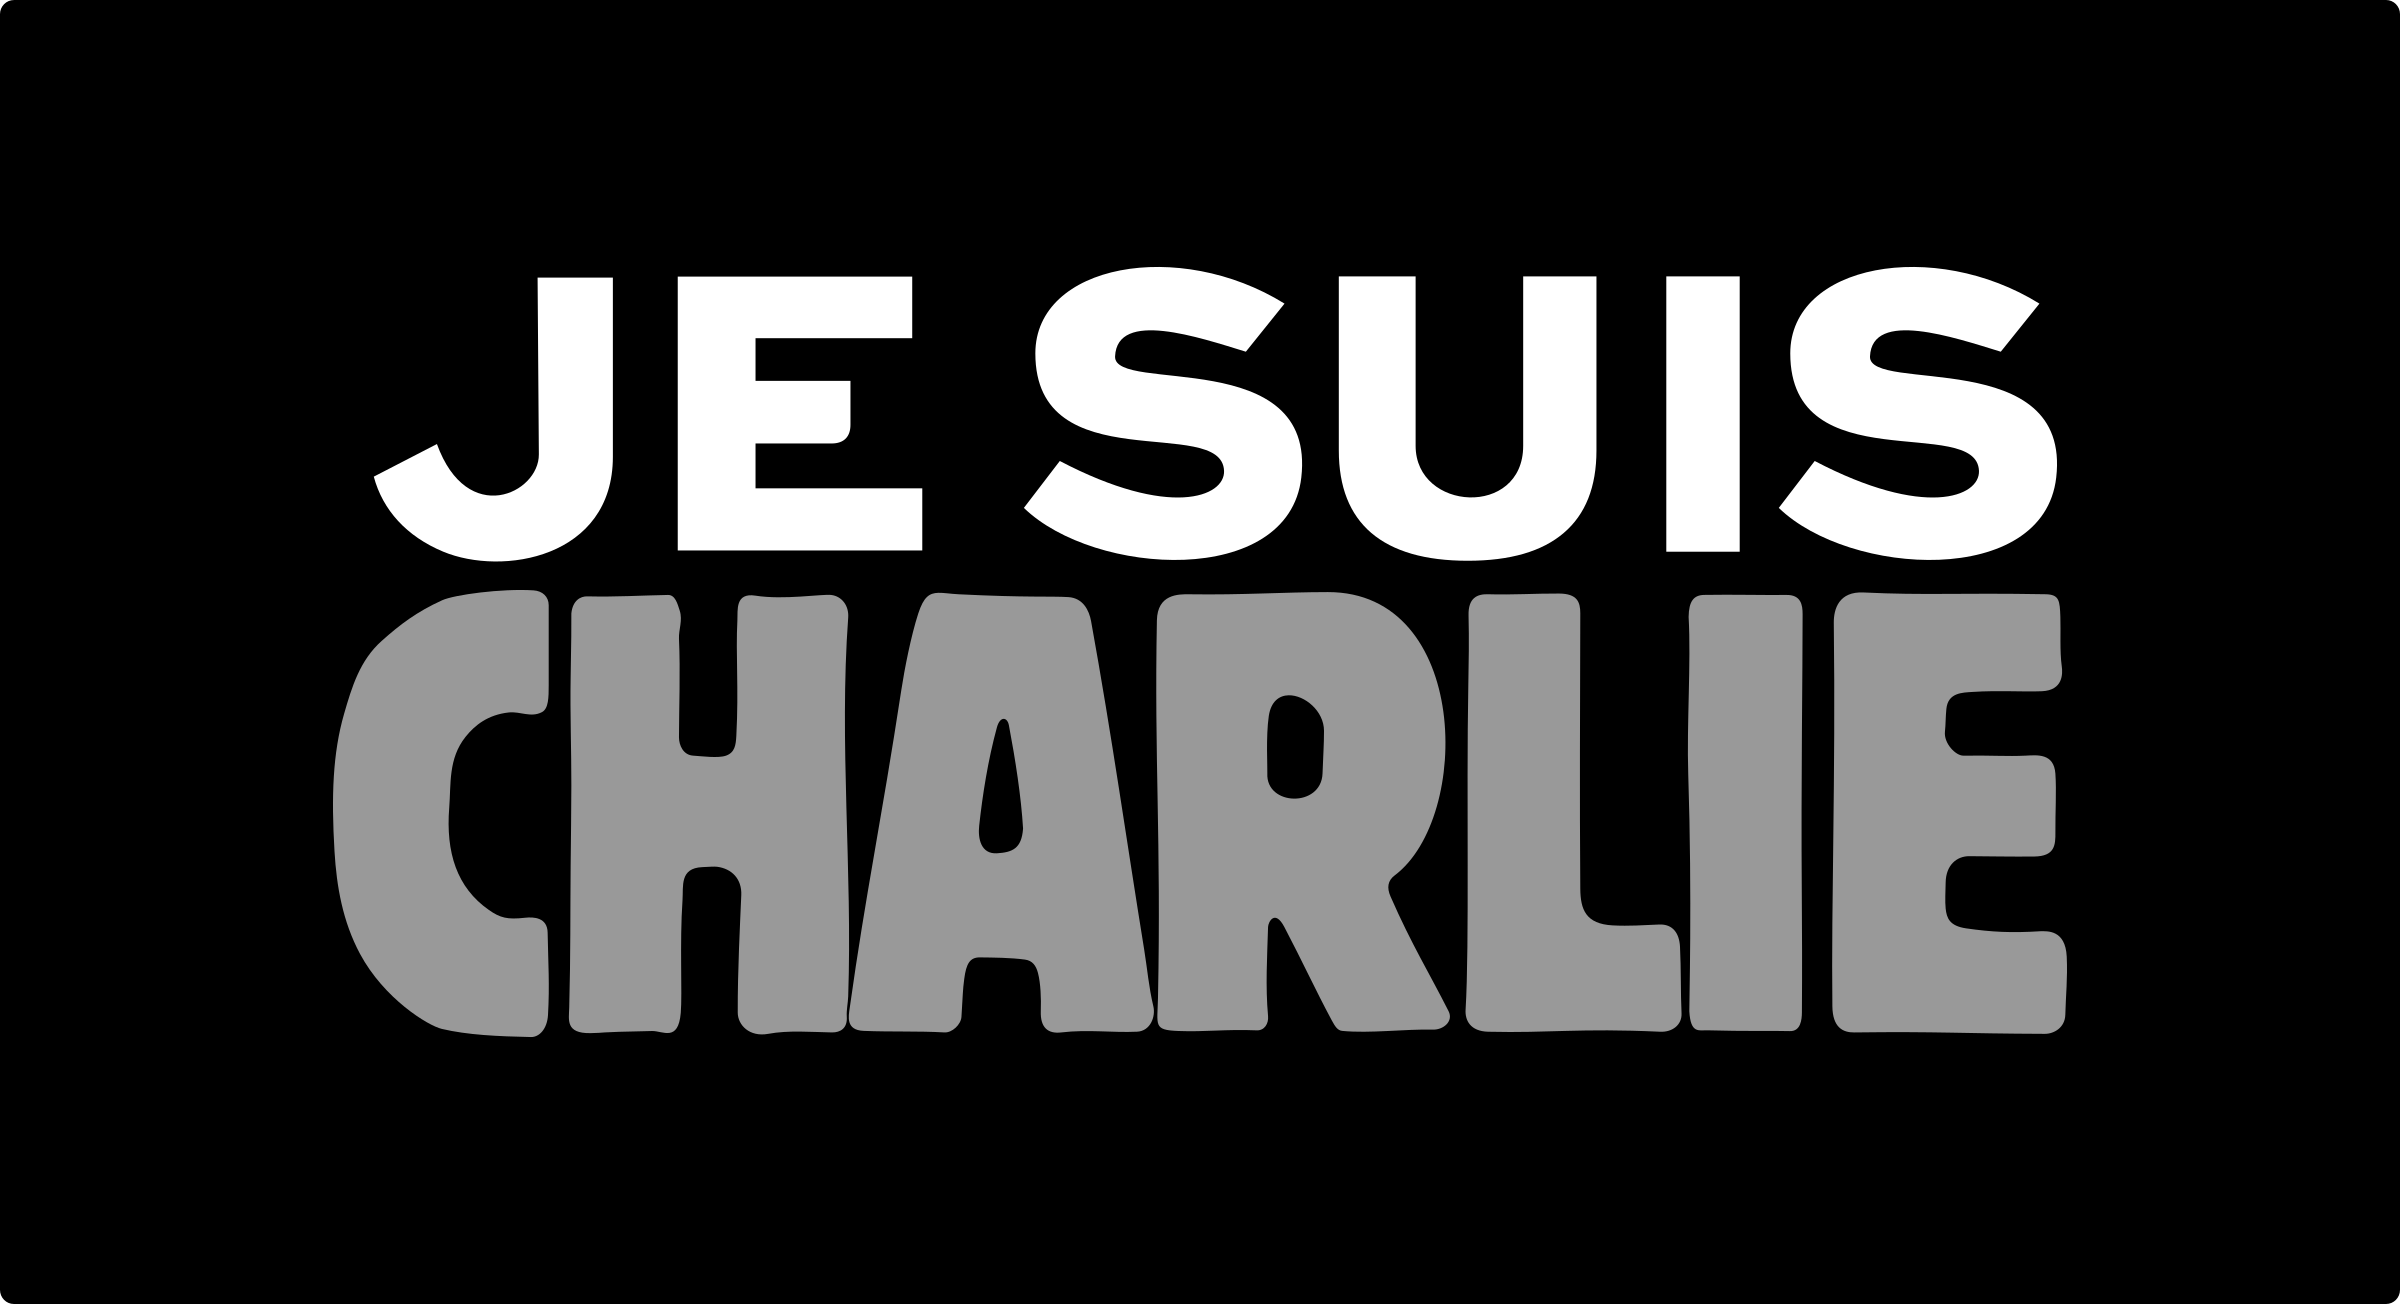 Je suis CHARLIE (I am CHARLIE) by cyberscooty